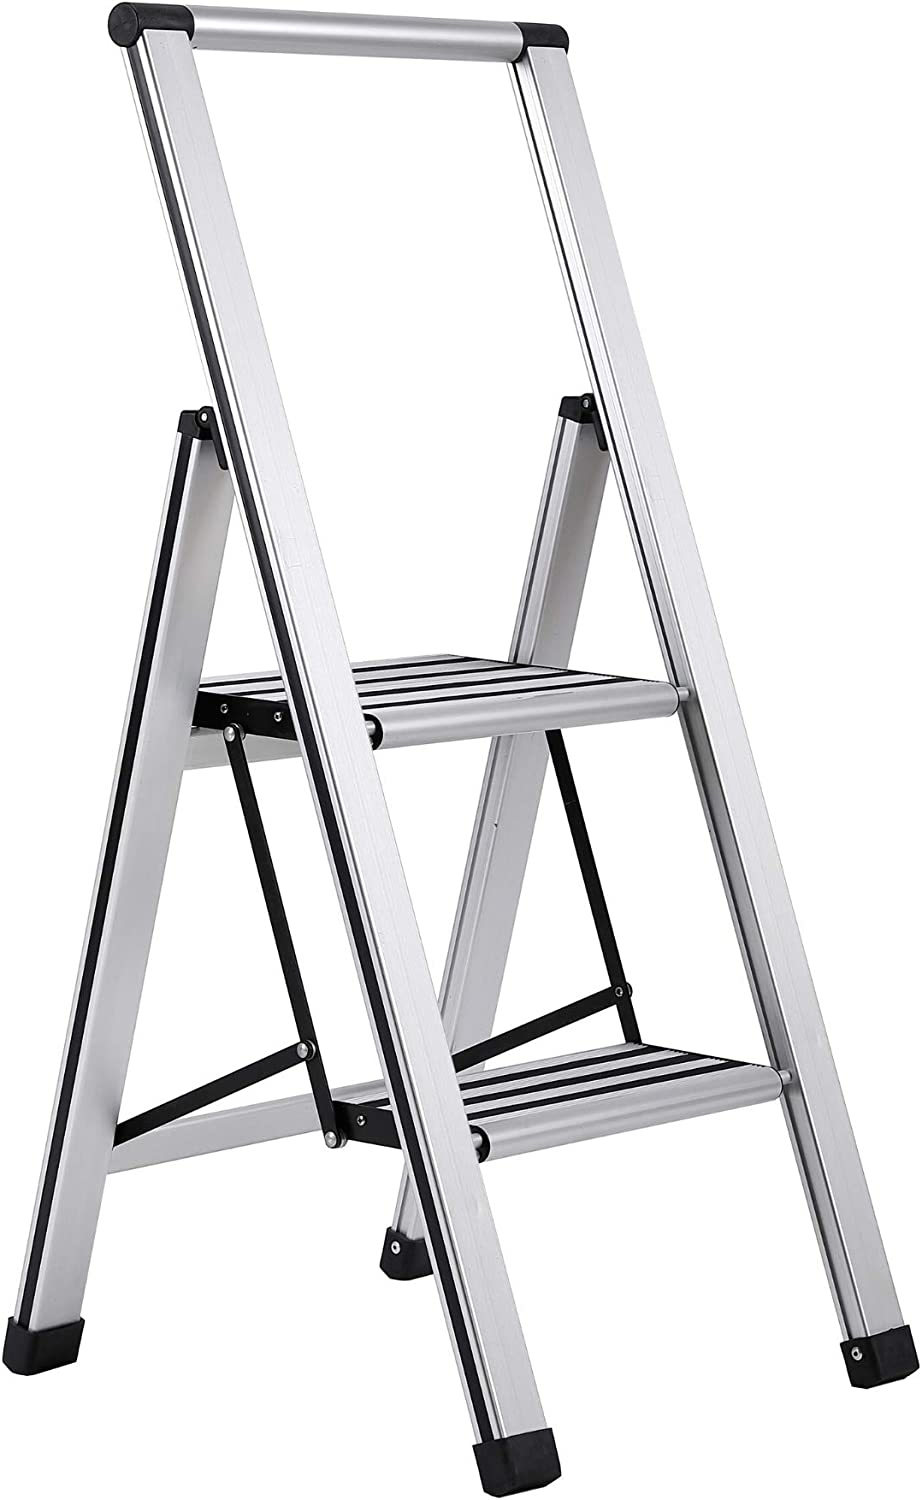 BirdRock Home 2-Step Slim Aluminum Step Ladder - Sturdy Thin Folding Stool - 2 Anti-Slip Steps - Wide Platform - Great for Your Kitchen, Pantry, Closets, or Home Office - Indoor Stool - Silver